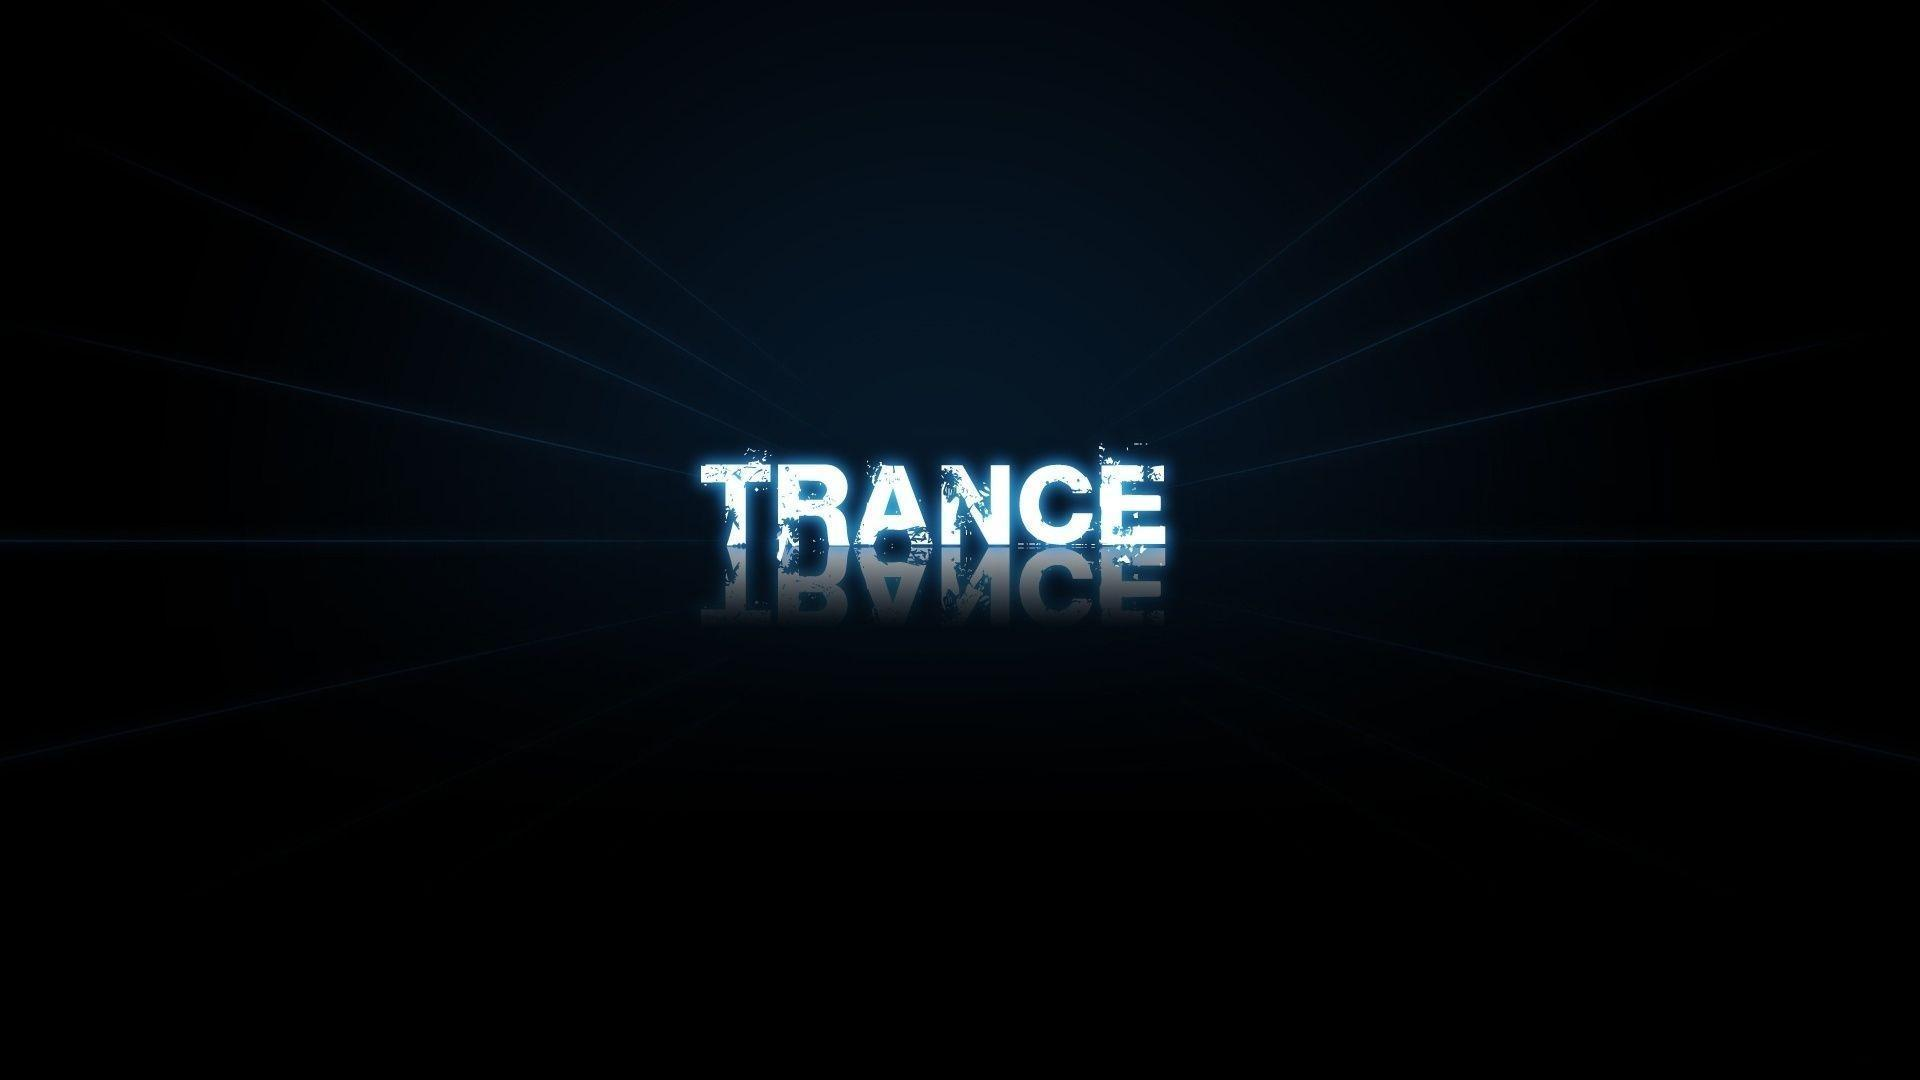 wallpapers trance wallpaper - photo #1